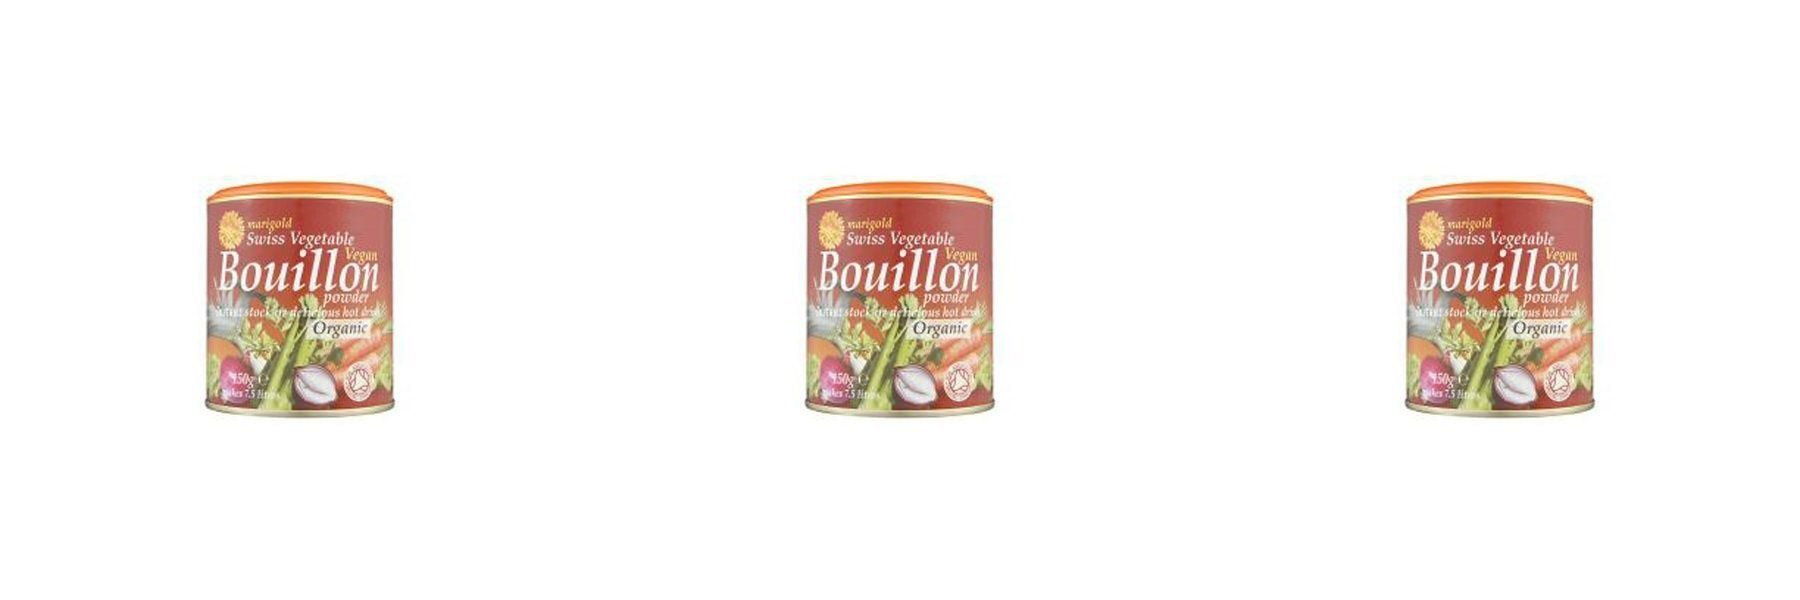 (3 PACK) - Marigold Swiss Vegetable Bouillon - Organic & Vegan| 150 g |3 PACK - SUPER SAVER - SAVE MONEY